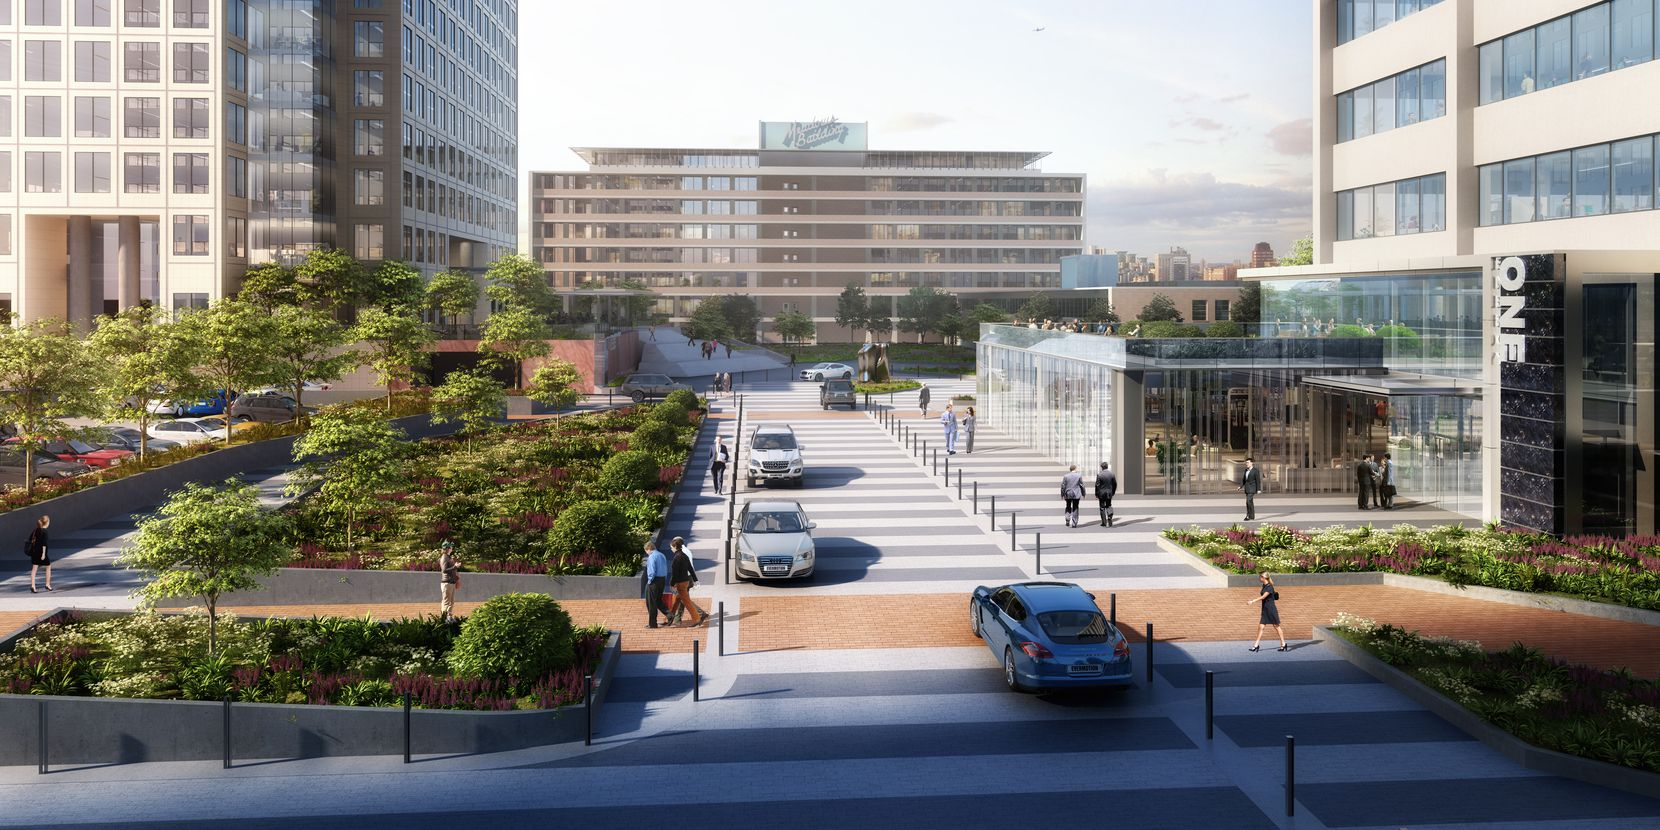 Gensler did the masterplan for the renovation of the three Energy Square towers and historic Meadows Building  that will be connected with a new park, boulevard and pedestrian areas.